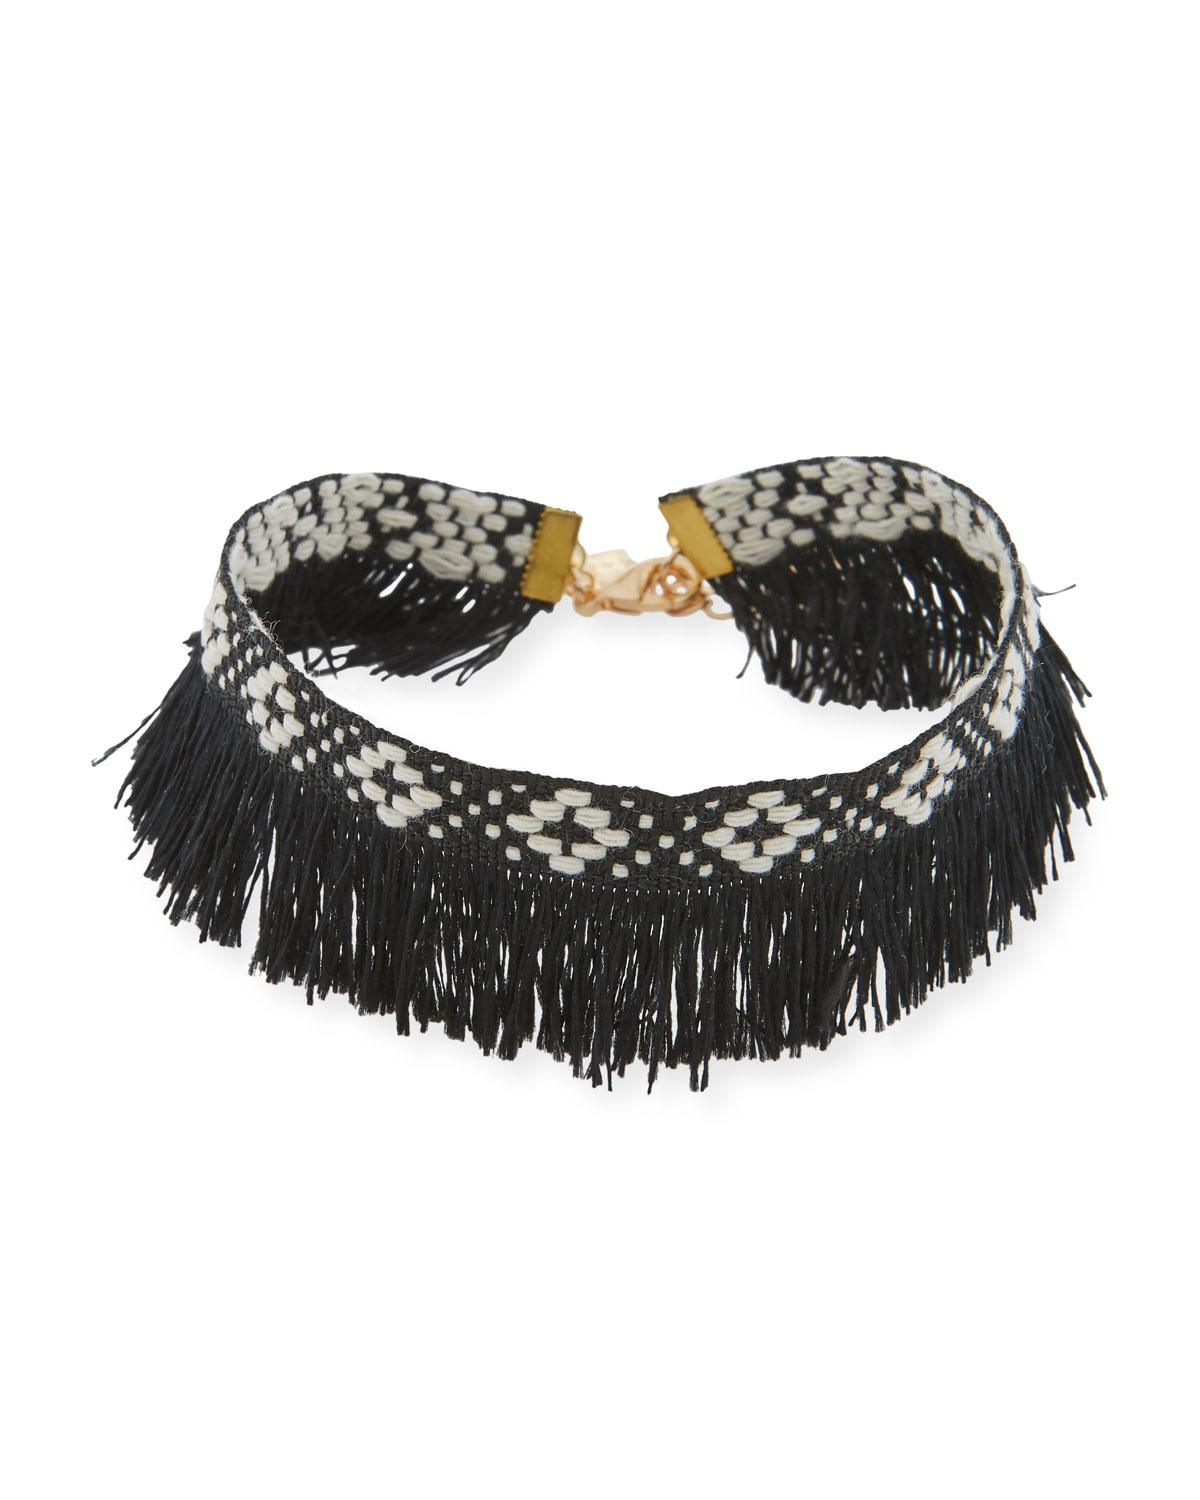 Panacea Geometric Woven Fringed Choker Necklace UbEqQaT3QJ